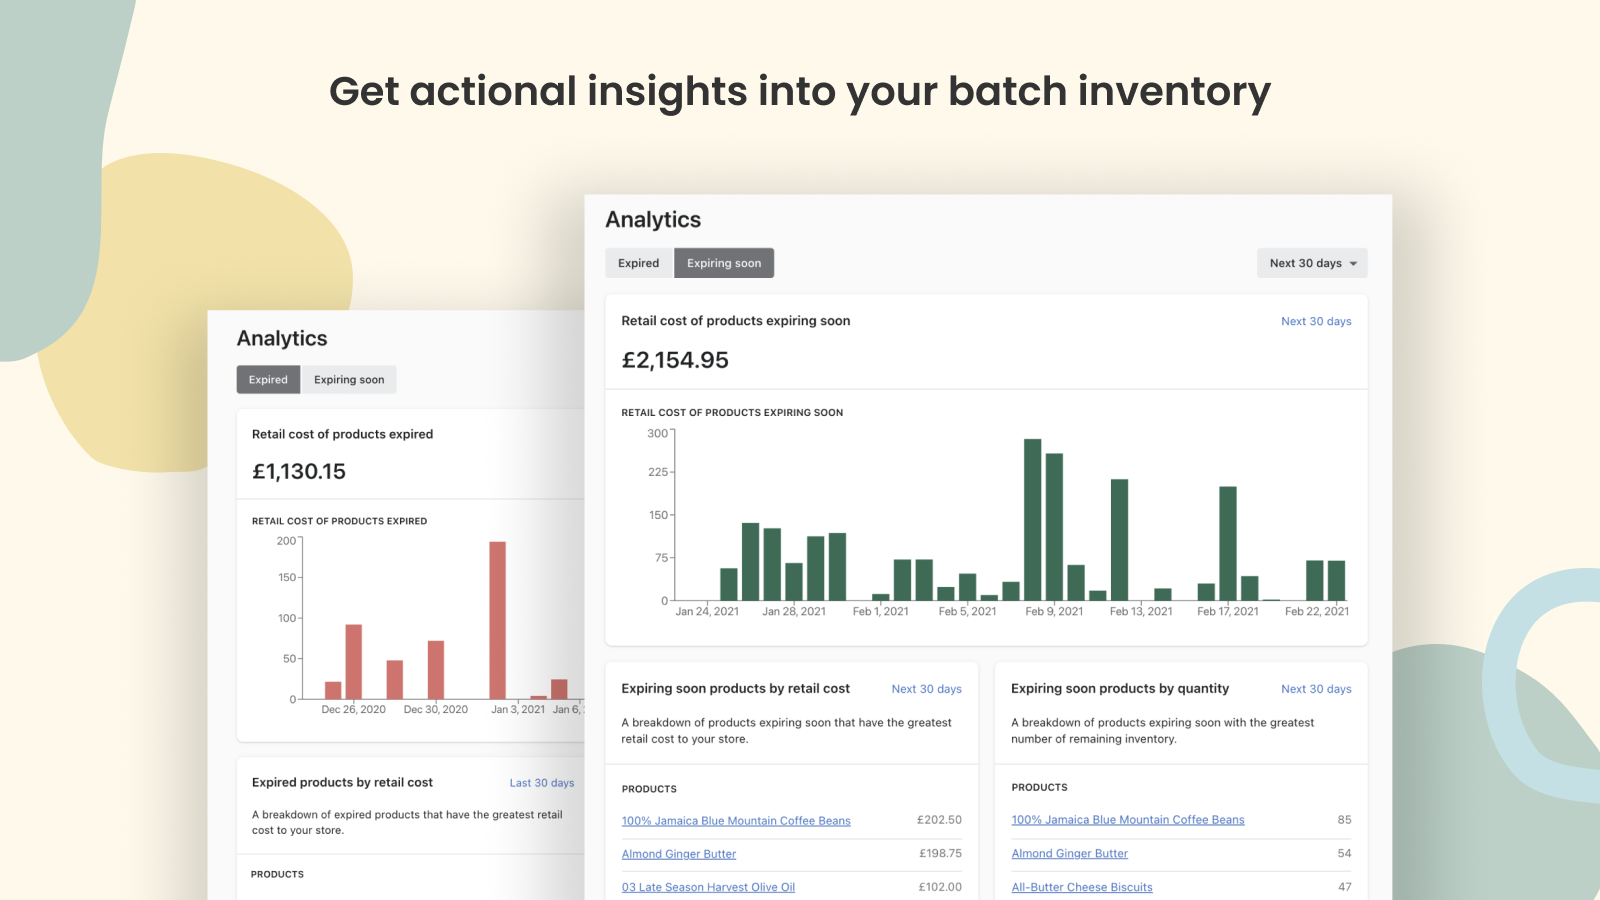 Get actional insights into your batch inventory